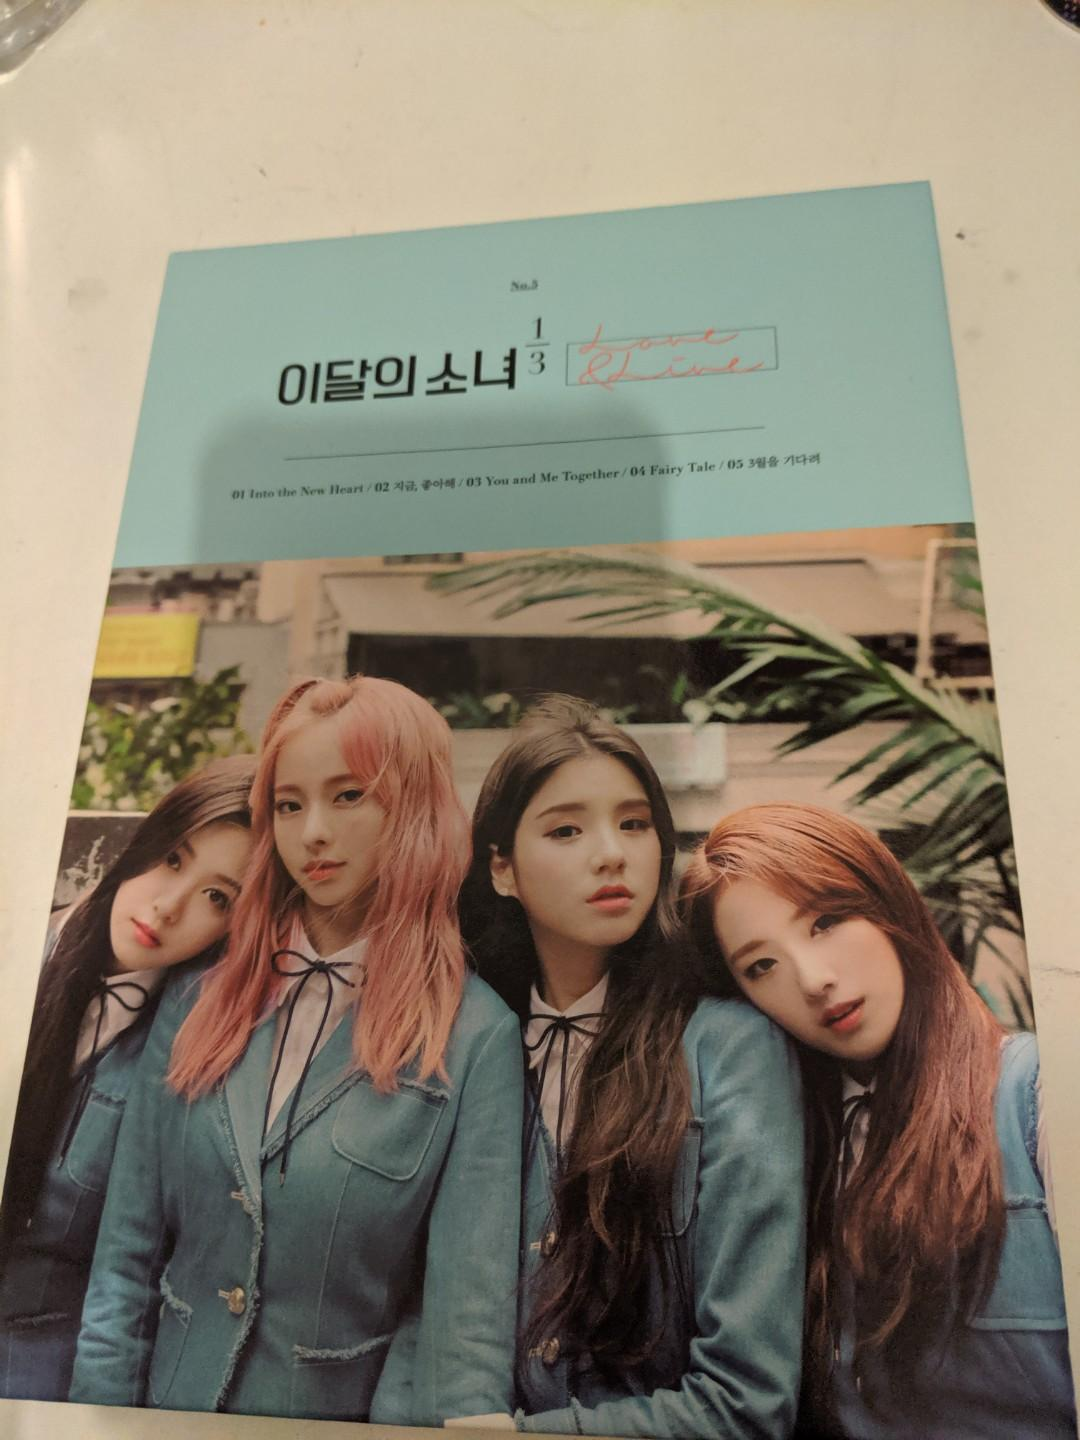 Loona love and live 1/3 unit limited edition K-pop album